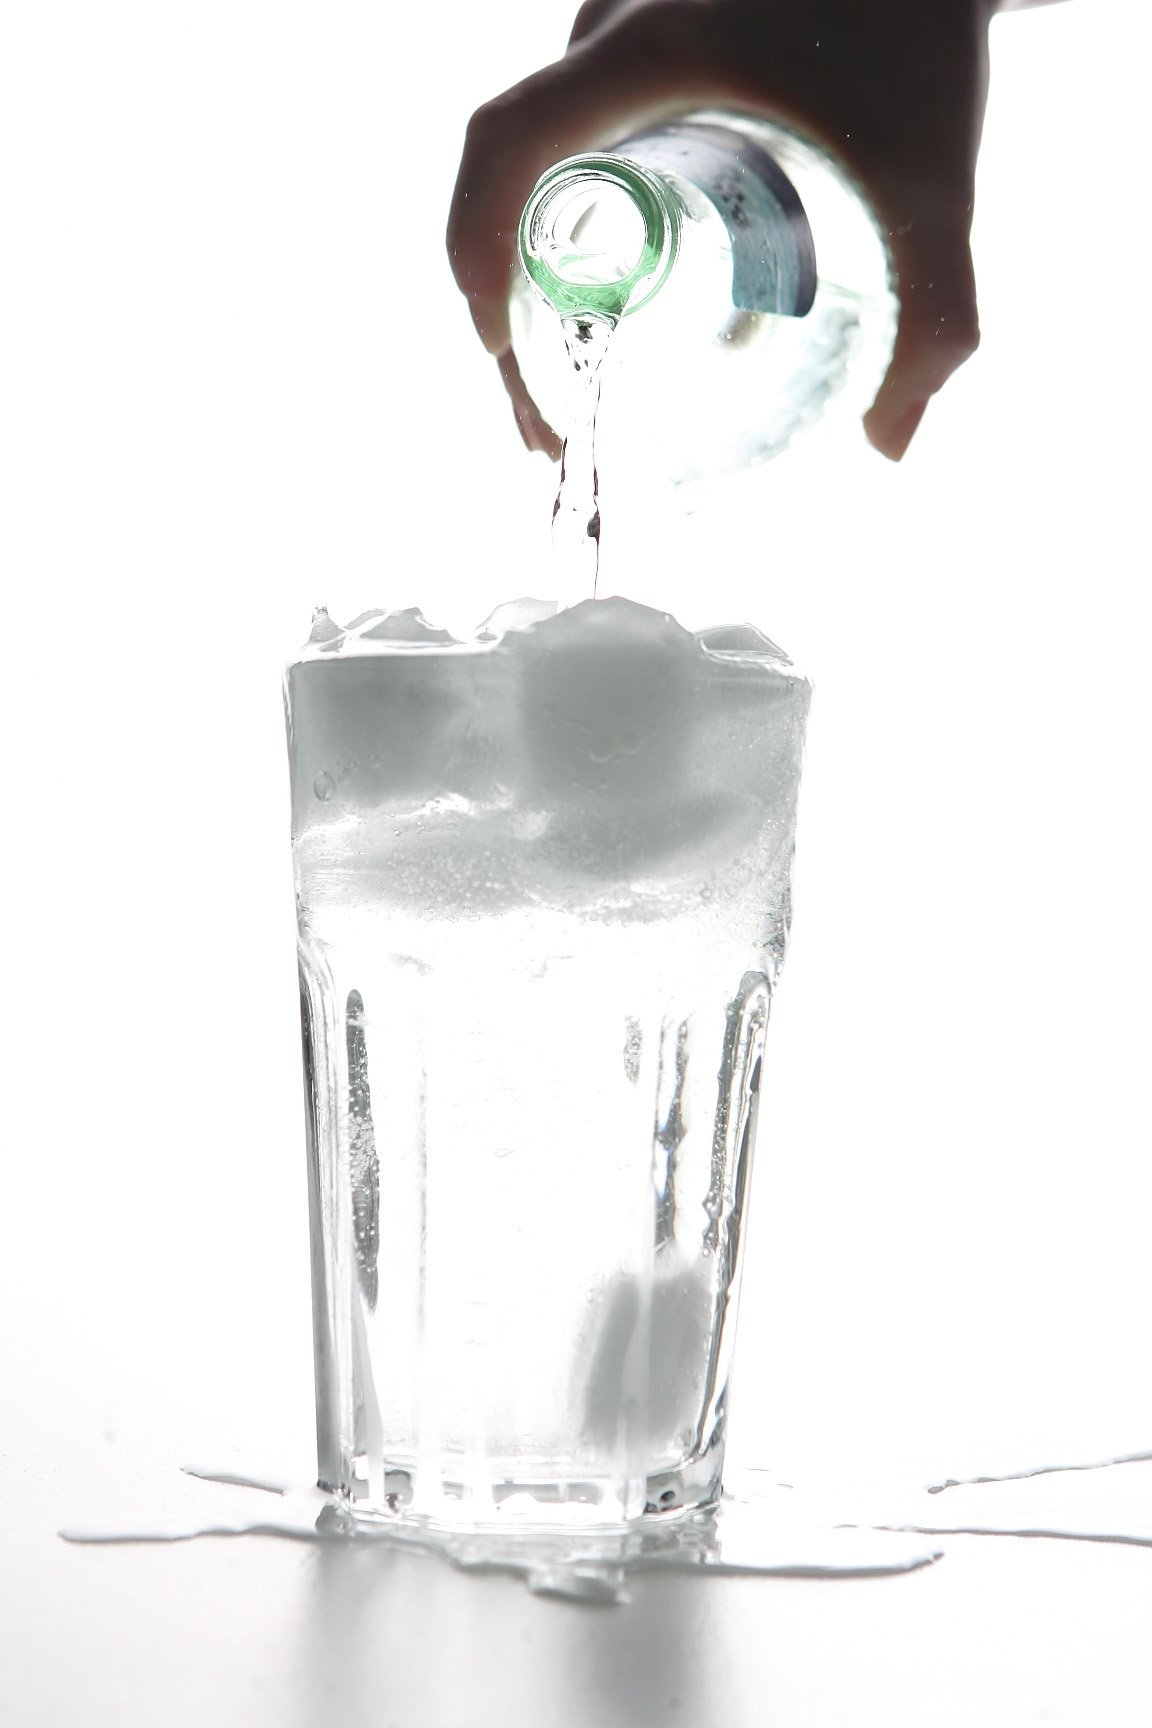 BERLIN - JANUARY 14: Water pours into a glass with ice cubes on January 14, 2007 in Berlin, Germany.  (Photo Illustration by Andreas Rentz/Getty Images)